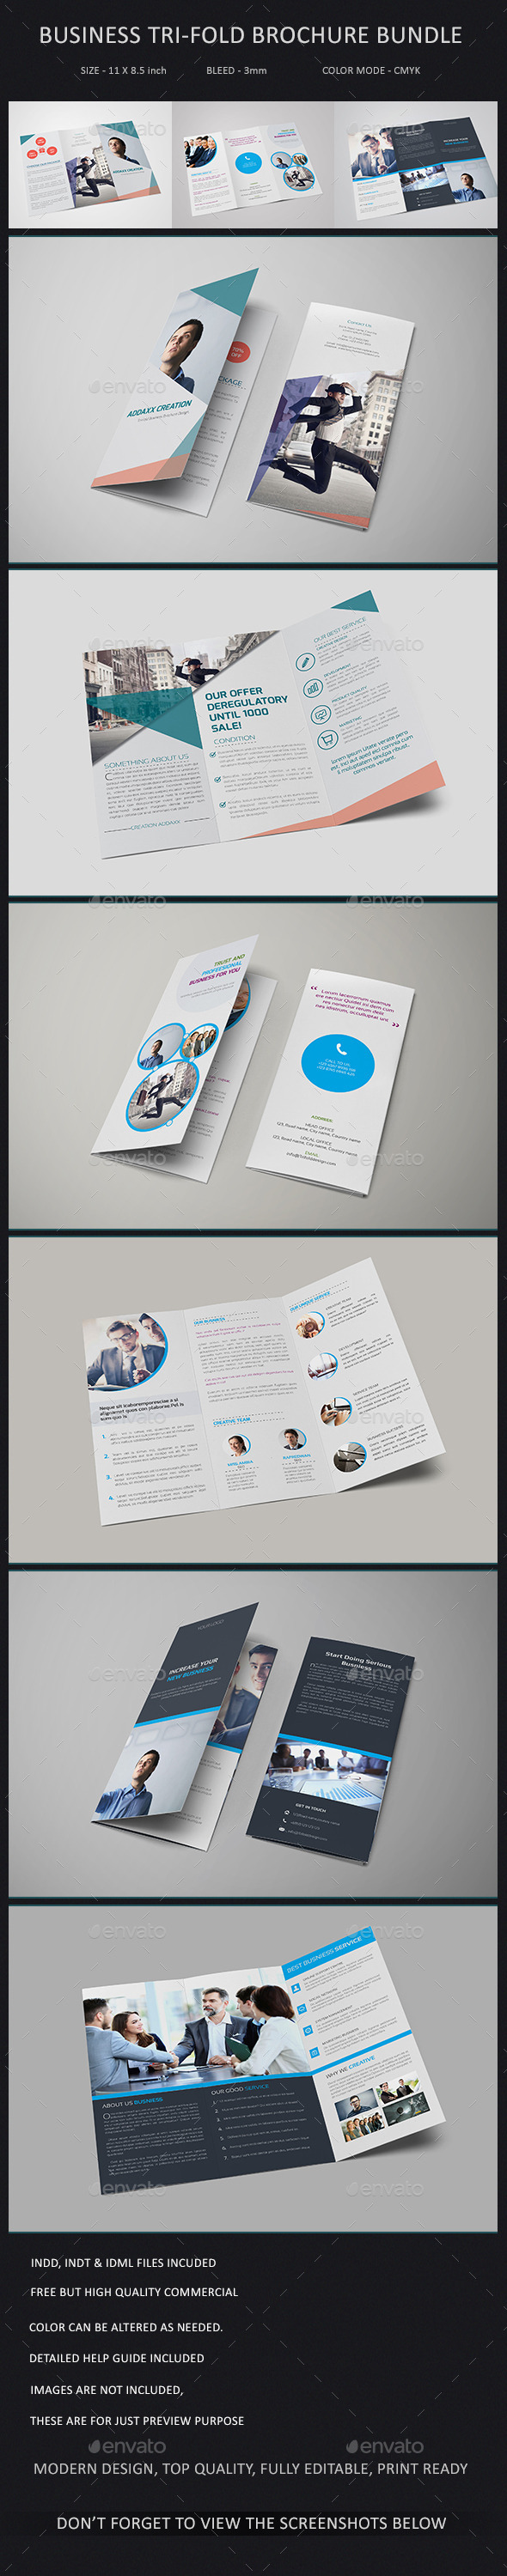 GraphicRiver Business Tri-fold Brochure Bundle 10909698